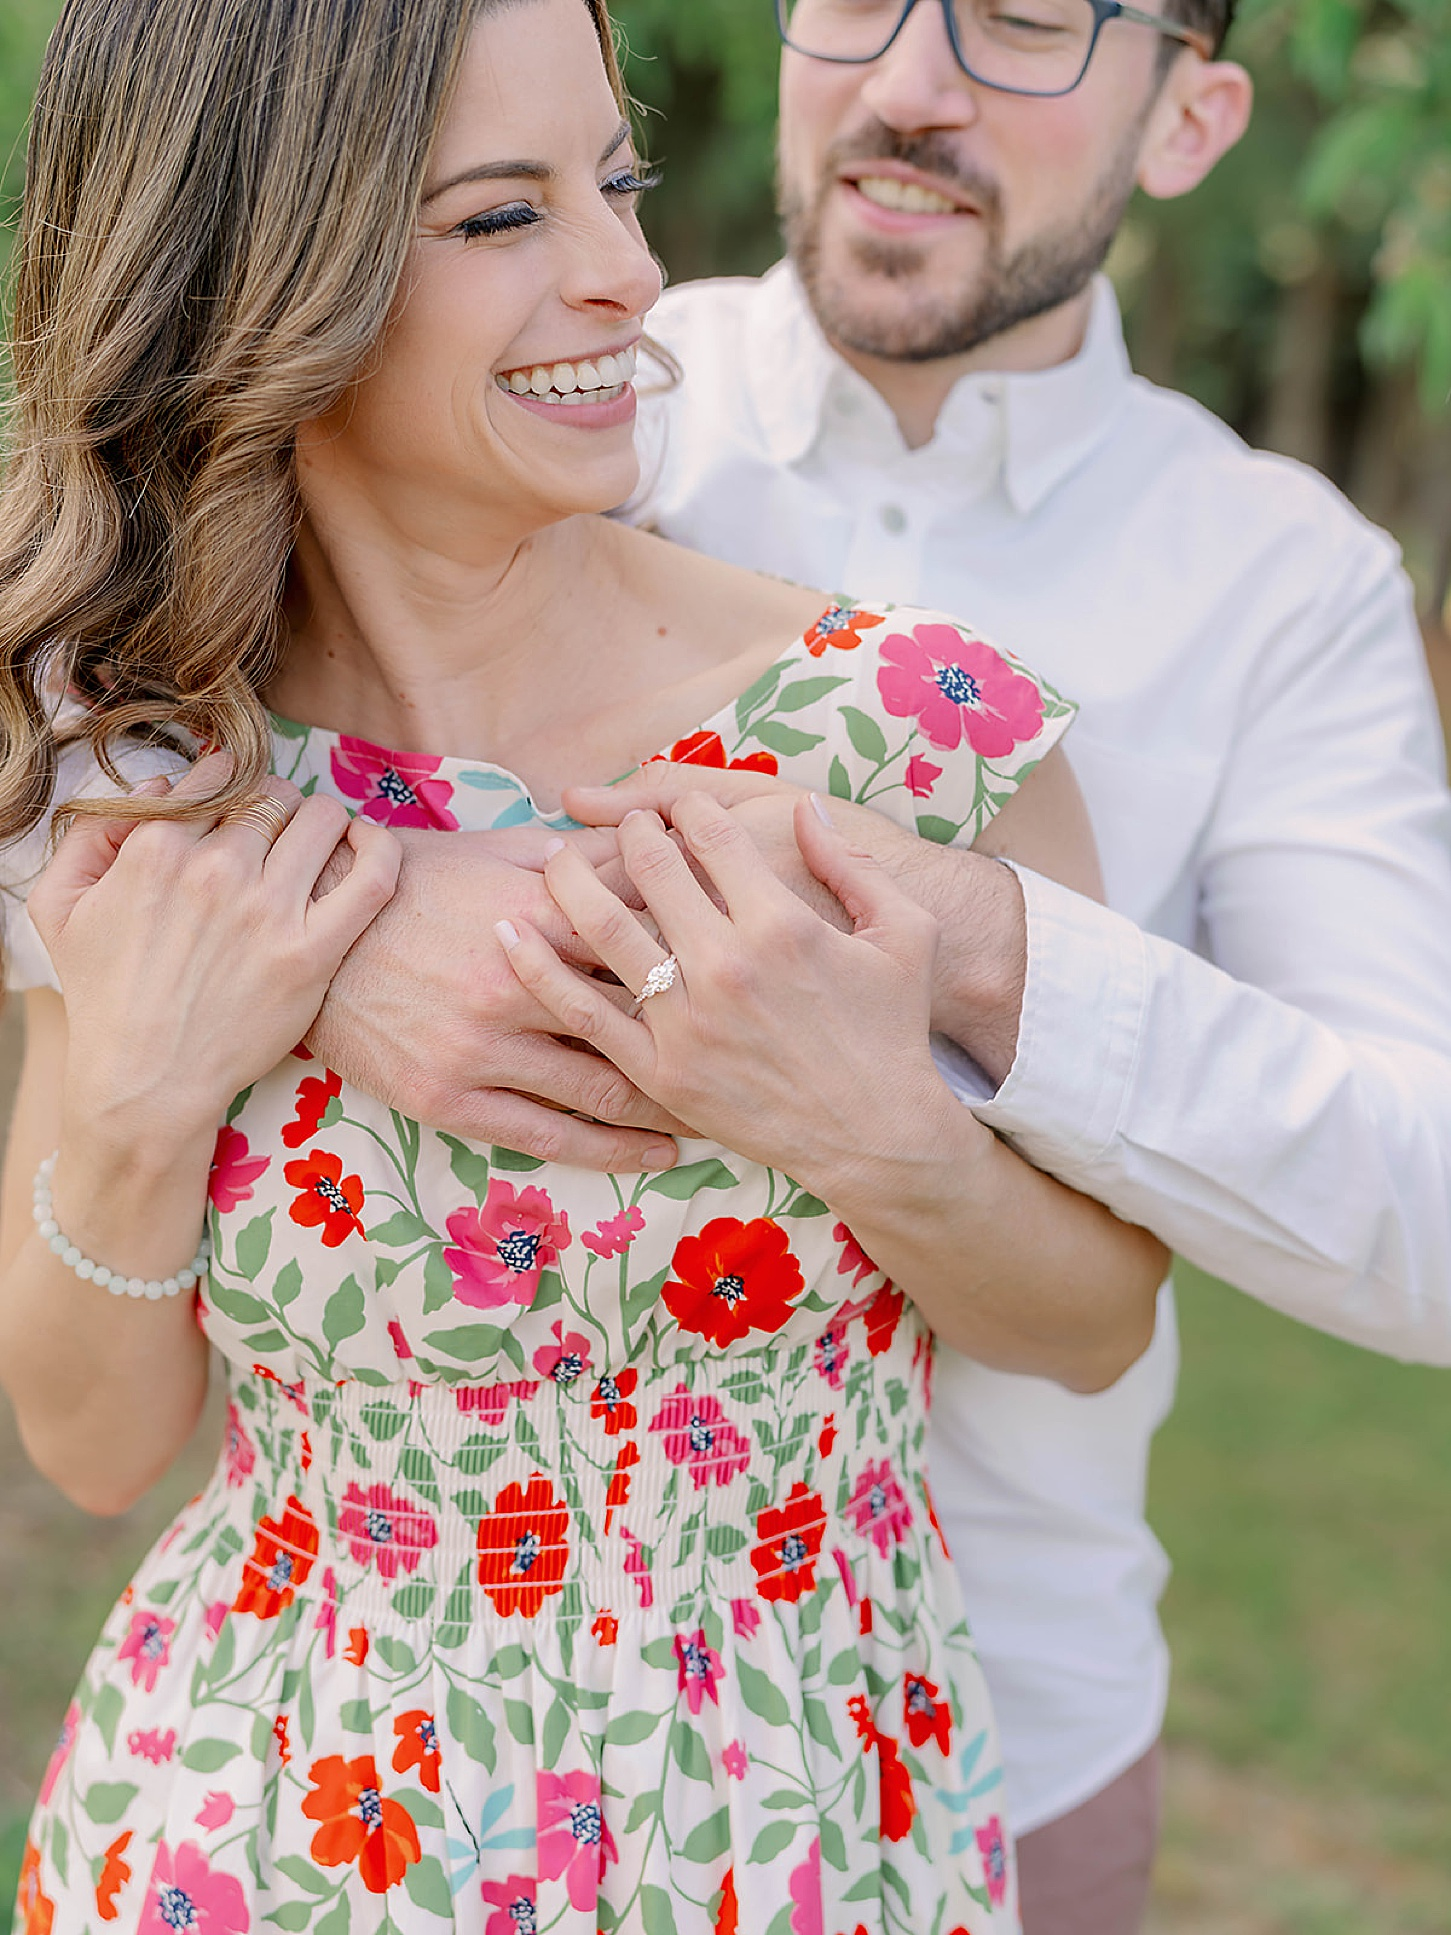 Bast Brothers Garden Center Mullica Hill NJ Engagement Photography by Magdalena Studios 0003